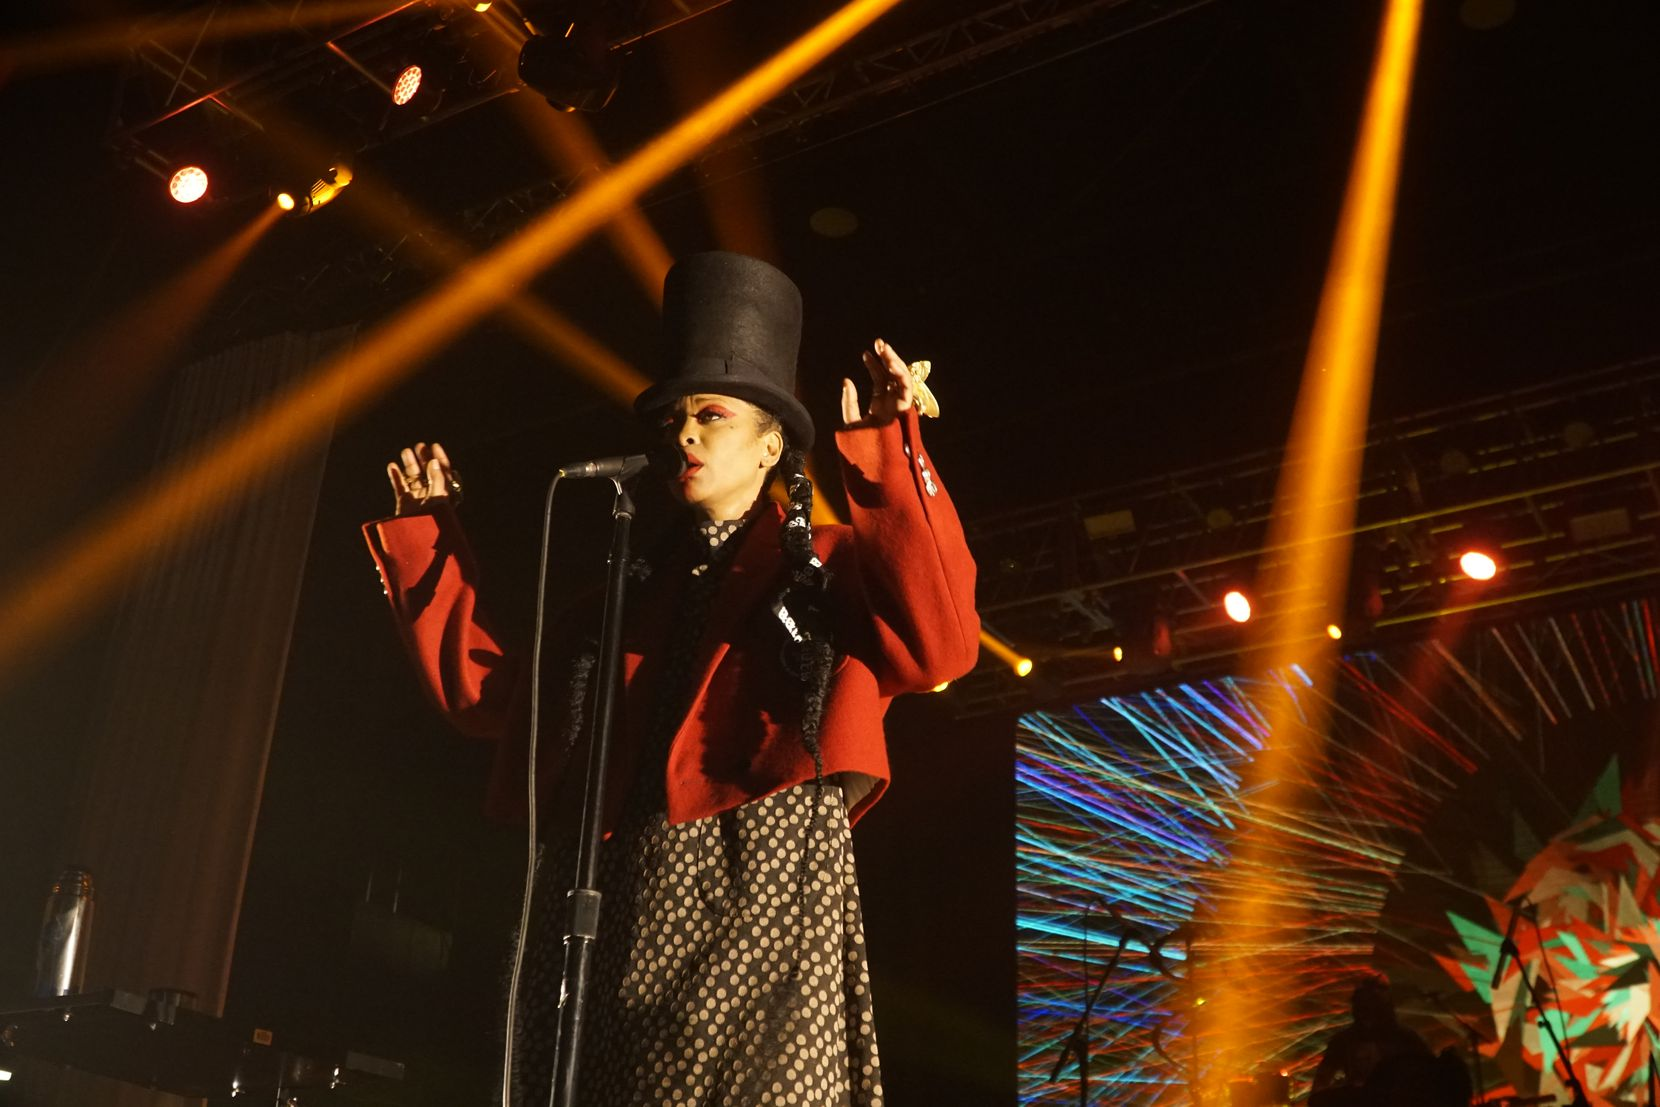 Erykah Badu performs at The Bomb Factory in Dallas on Feb. 22, 2020. Badu will perform at the Riverfront Jazz Festival on Sept. 3, 2021, in Dallas.